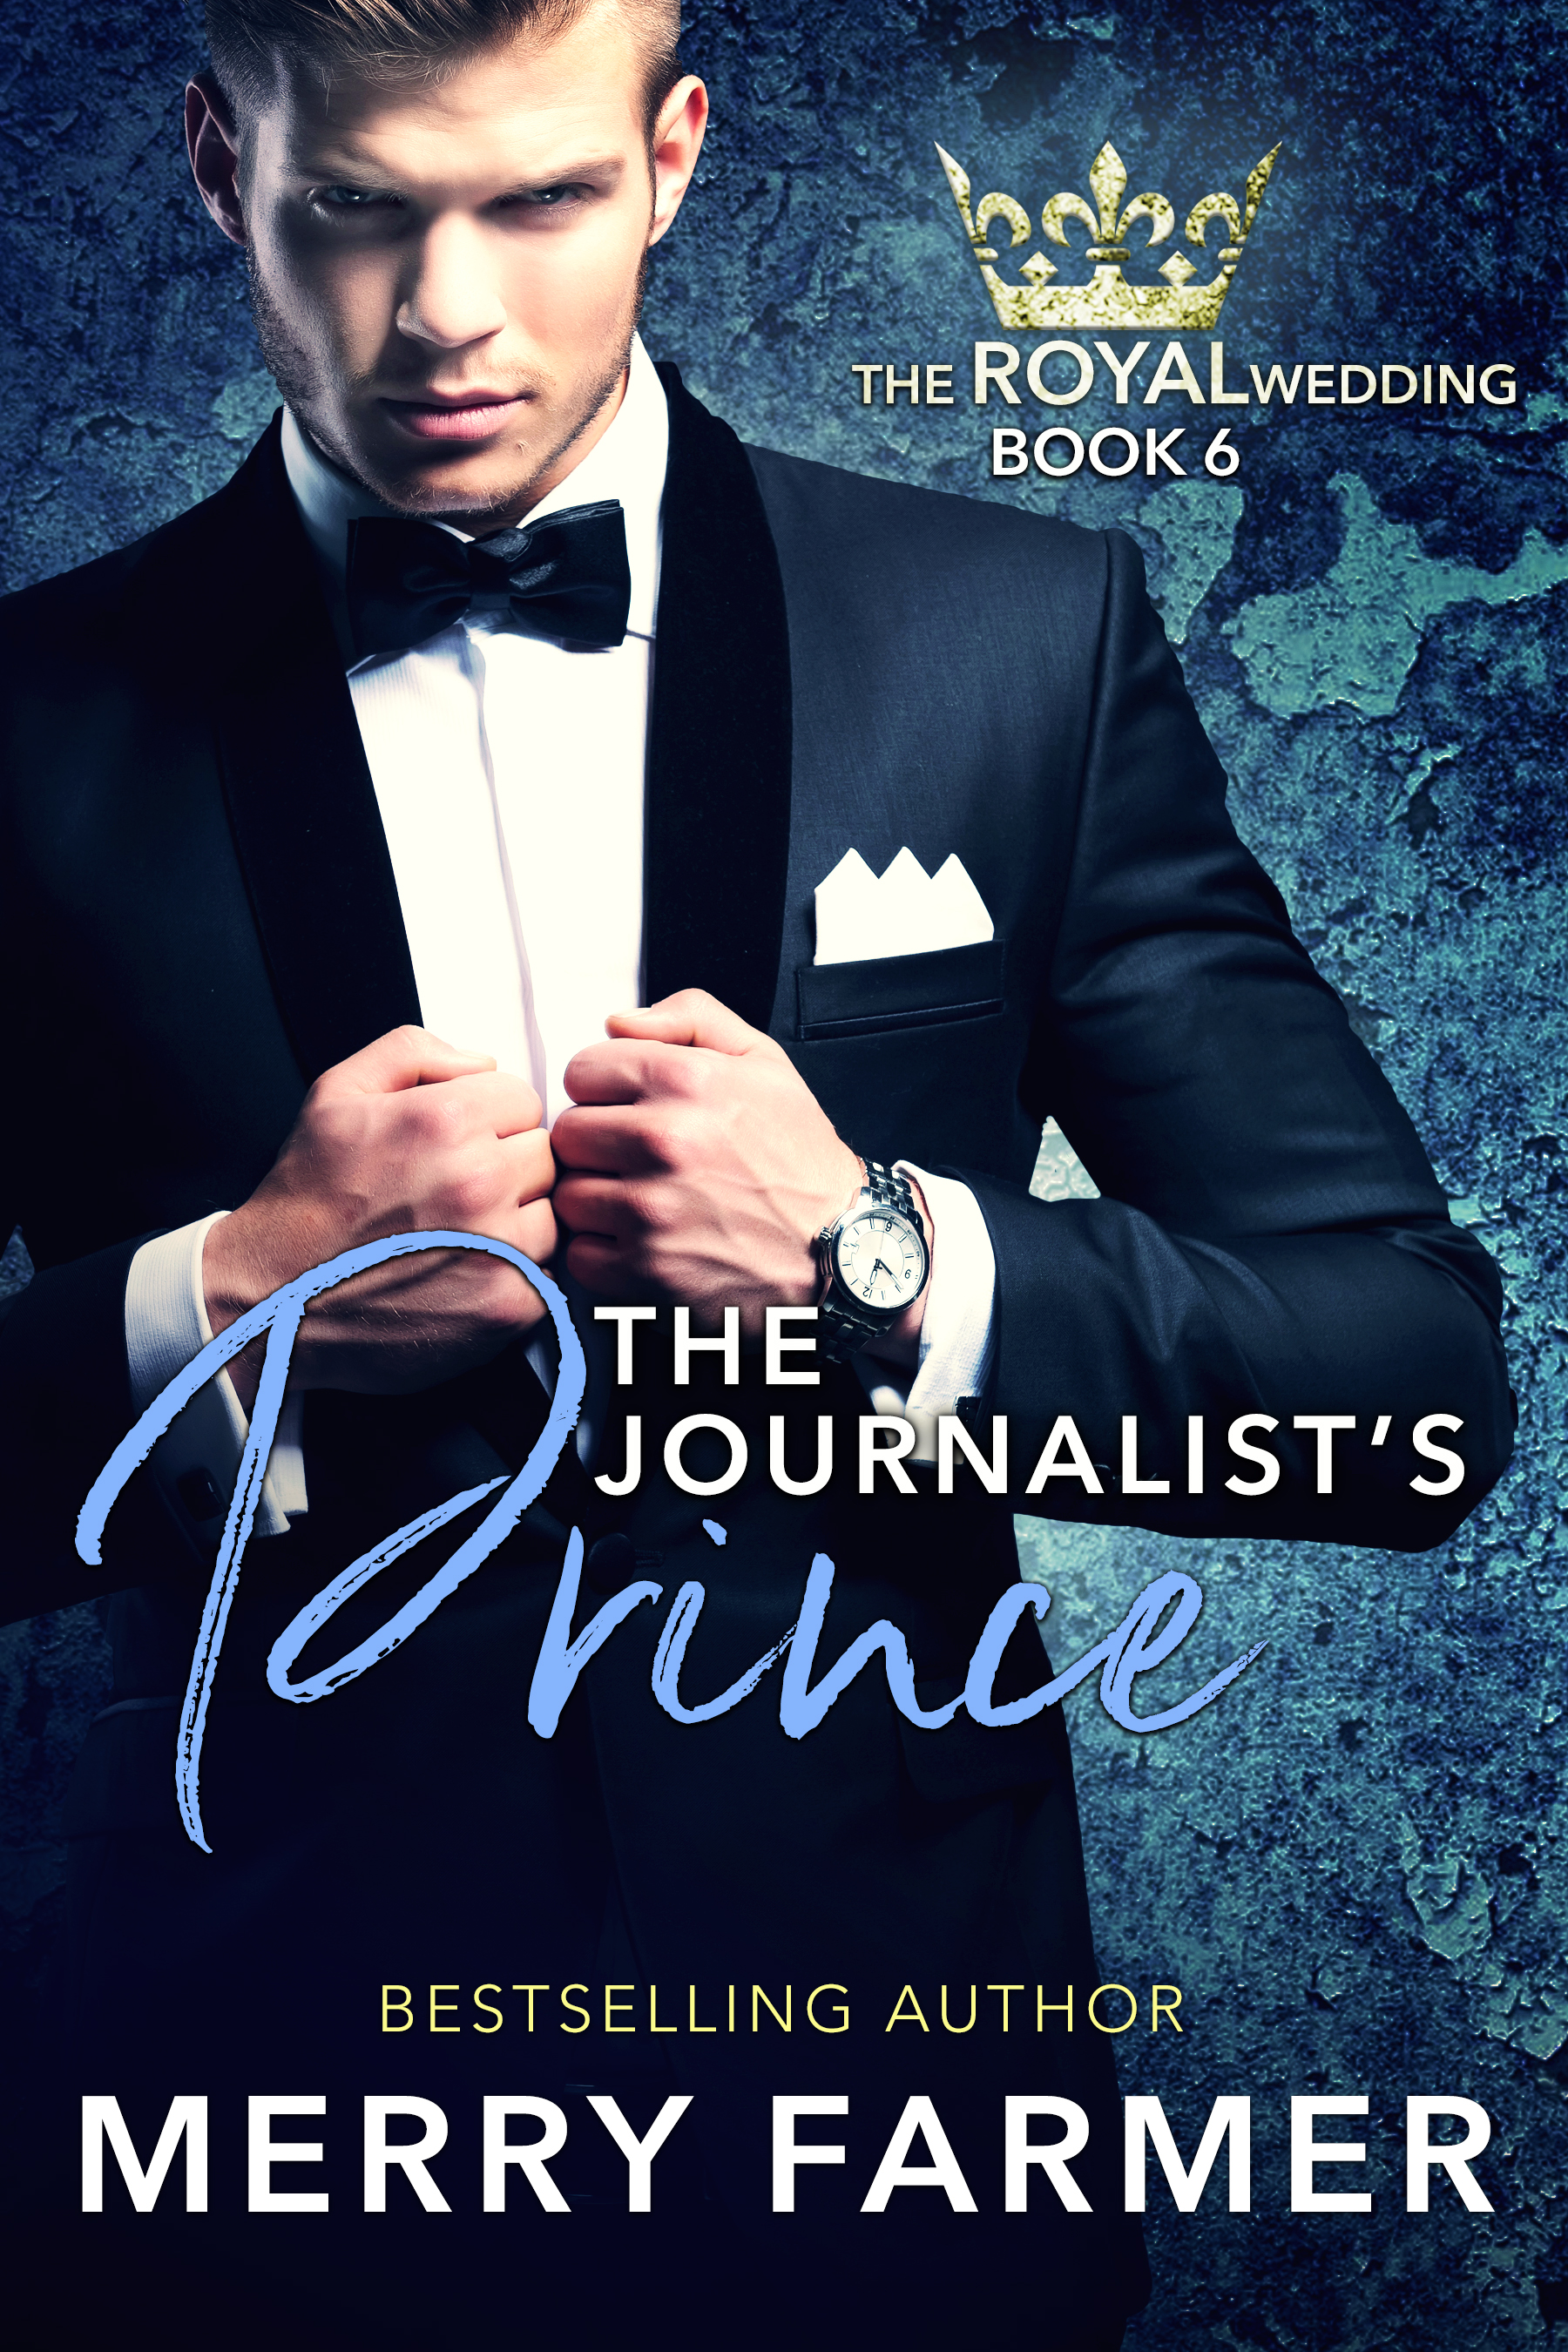 """The Journalist's Prince - by Merry Farmer (Book Six) - A Prince, a Journalist, and eighteen hours to save the royal wedding….As the youngest member of the Aegirian royal family, Prince Johannes Magnusson takes his responsibility to his family seriously. So when his mother's wedding seems doomed at the last minute, he will stop at nothing to set things right. But when a prominent member of the royal family goes missing under suspicious circumstances, the search for answers uncovers more than anyone bargained for.Journalist Tracy Minhall has embraced the island kingdom of Aegiria as her new home, mostly because of her intimate connection to Prince Johan. So when he needs her help to solve a royal mystery, she jumps at the chance to face danger. But not everyone is happy with her risk-taking ways, and the truths she uncovers could tear the royal family apart forever.Will the royal wedding happen at last, or will the truth spell the end for the Aegirian monarchy?PLEASE BE ADVISED: Steam Level – Hot…including one """"open door"""" scene."""